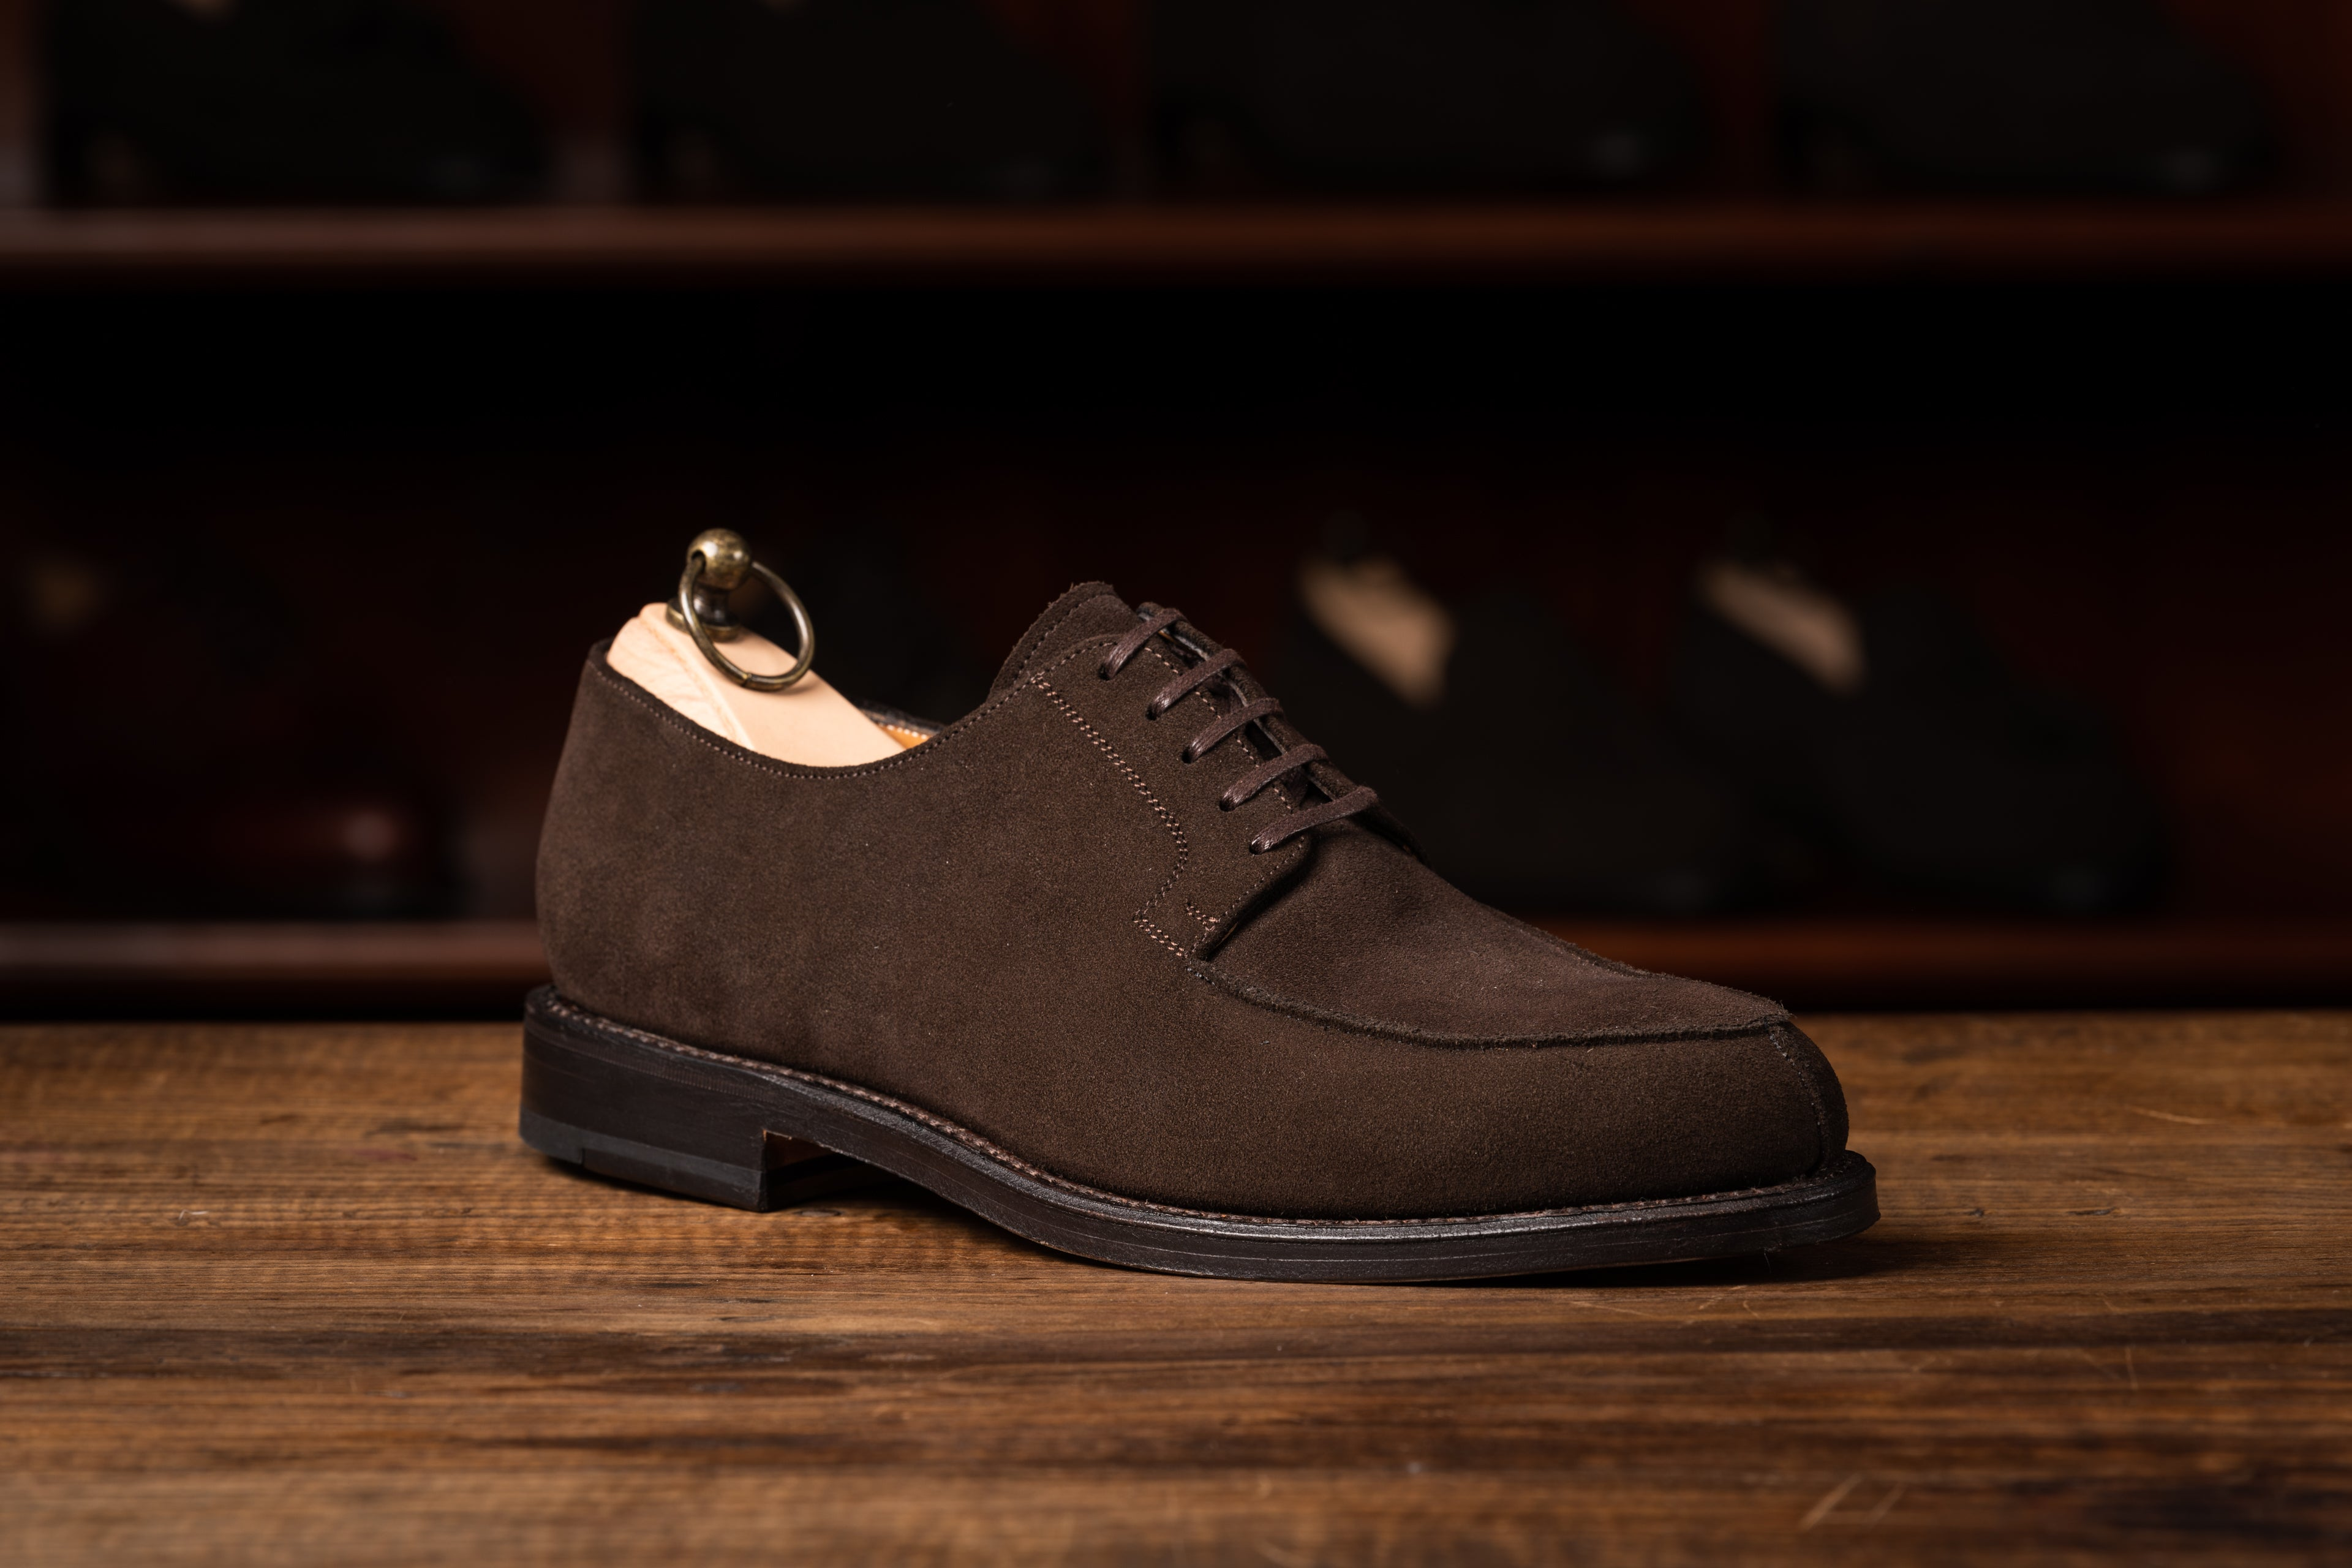 Norweger // English Suede // Dunkelbraun // Rendenbach Ledersohle